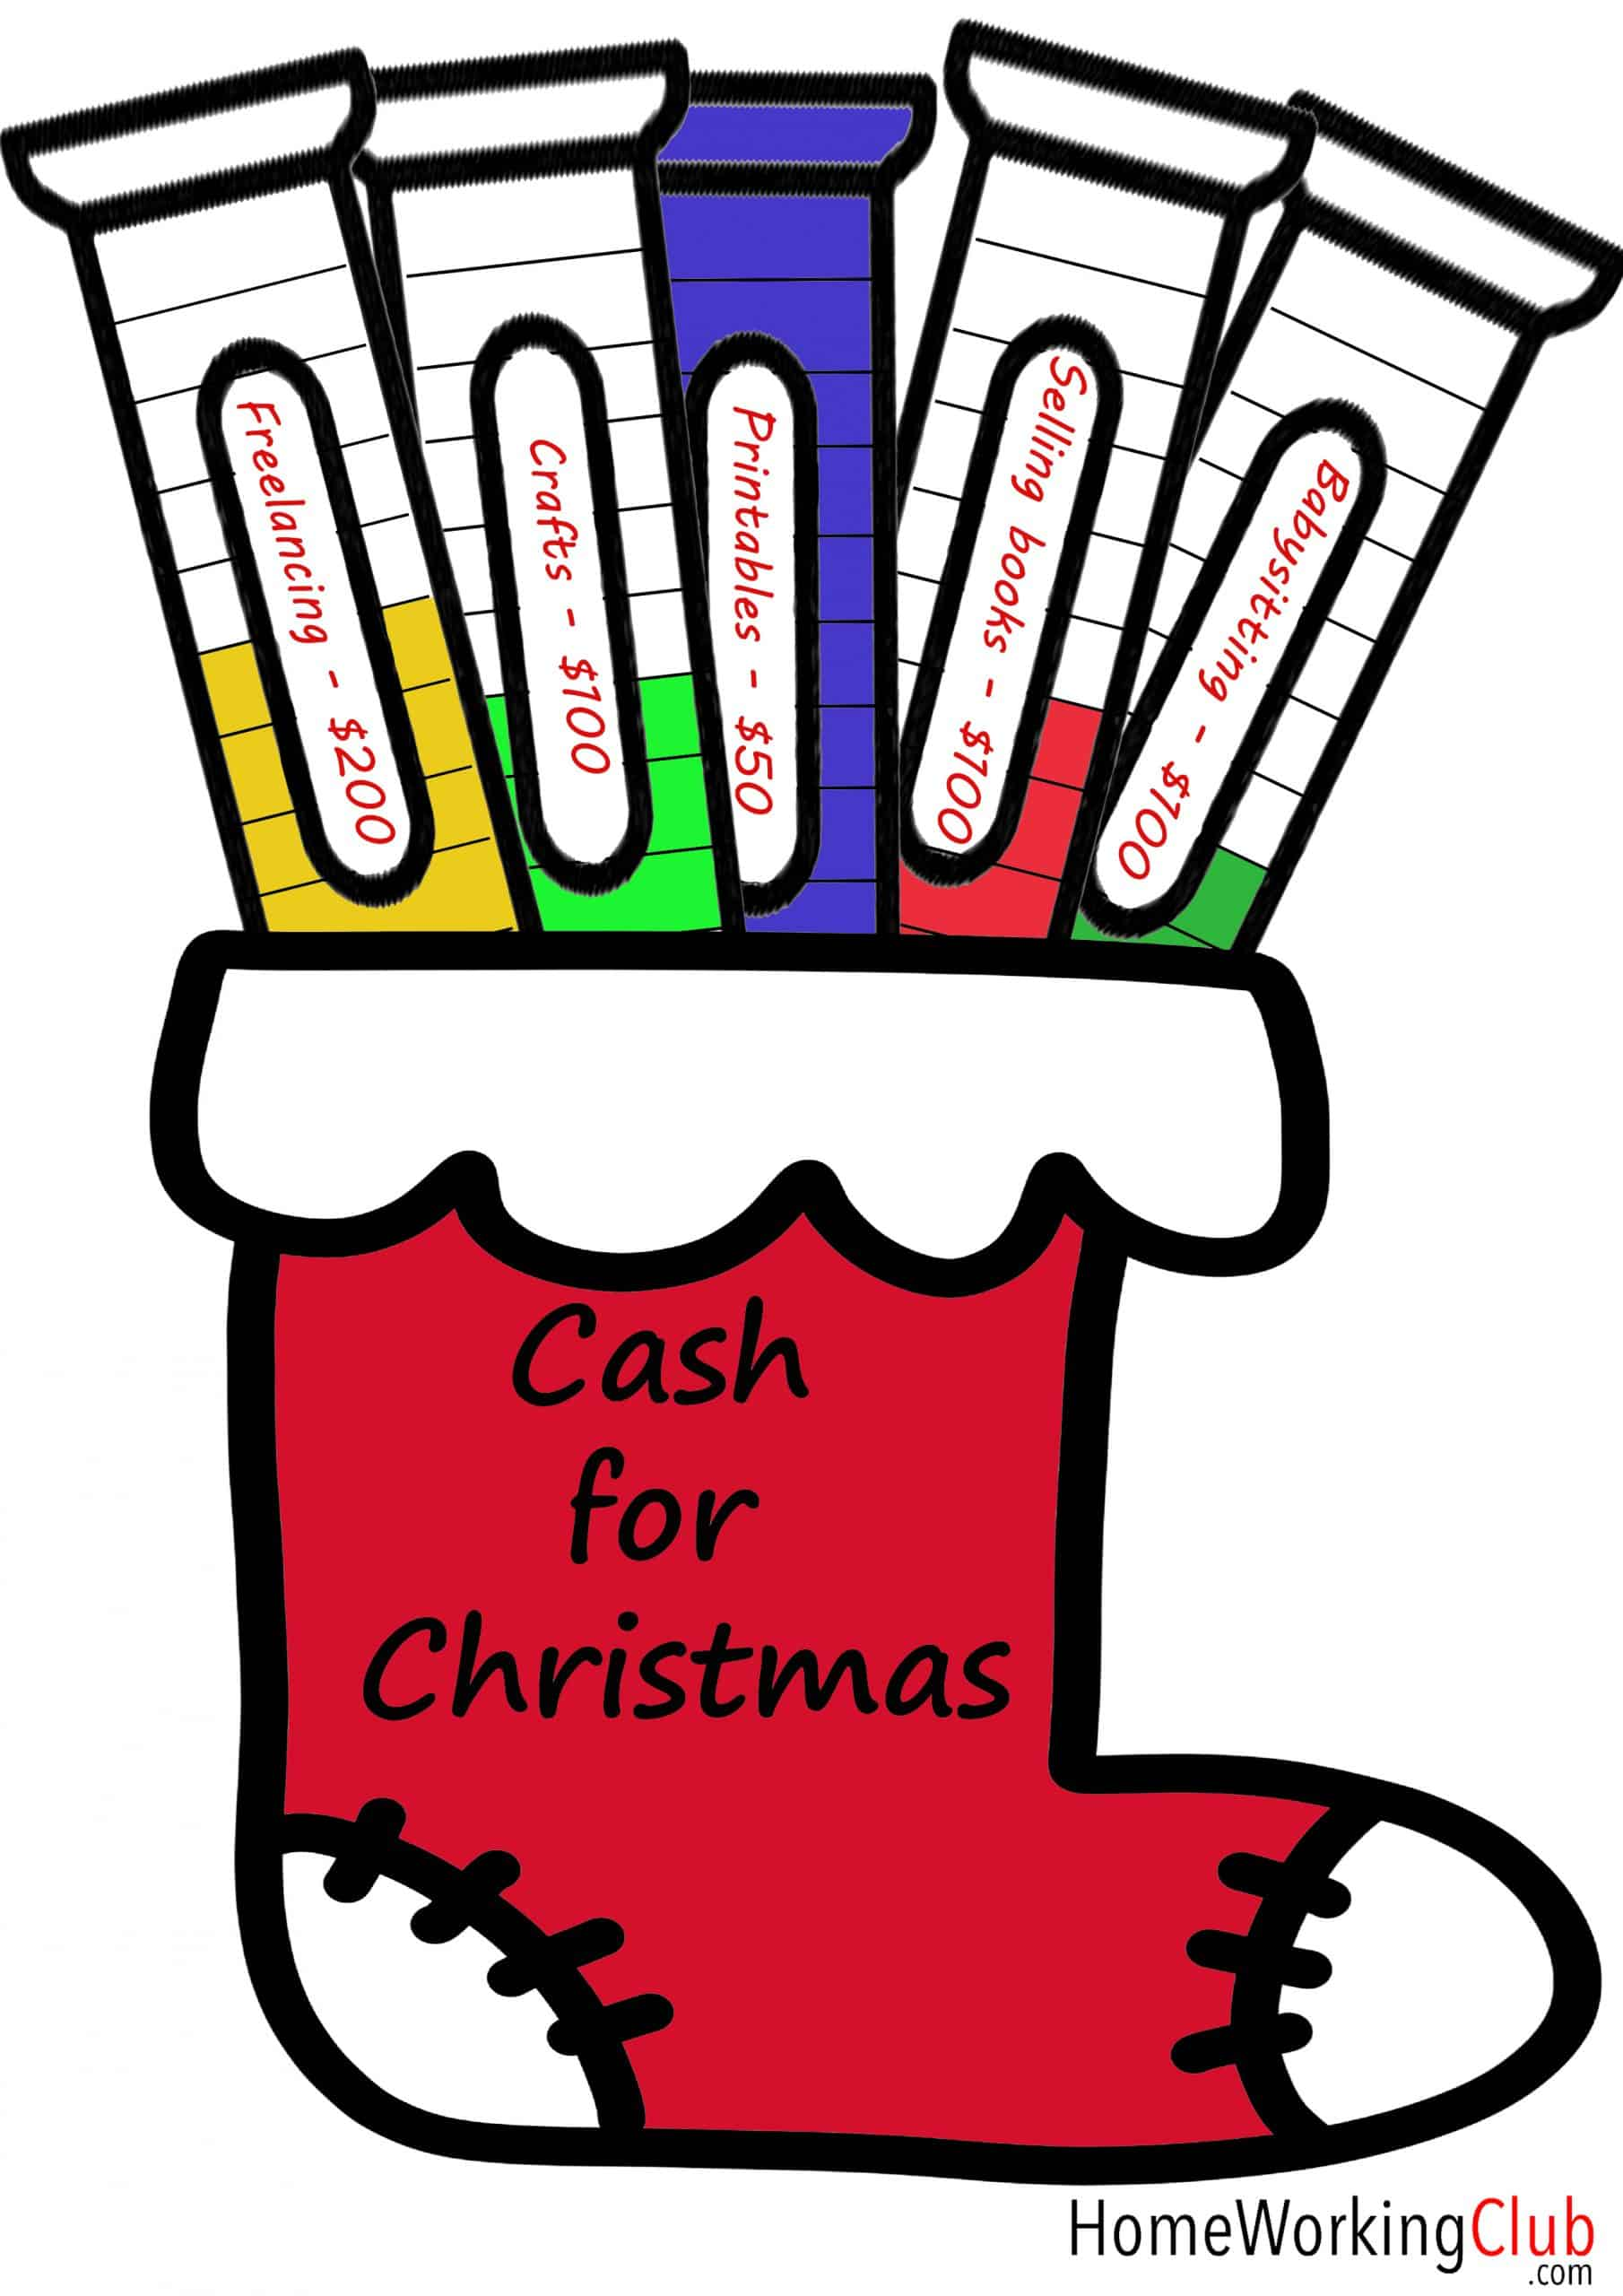 Printable which can be used to track cash for Christmas earnings